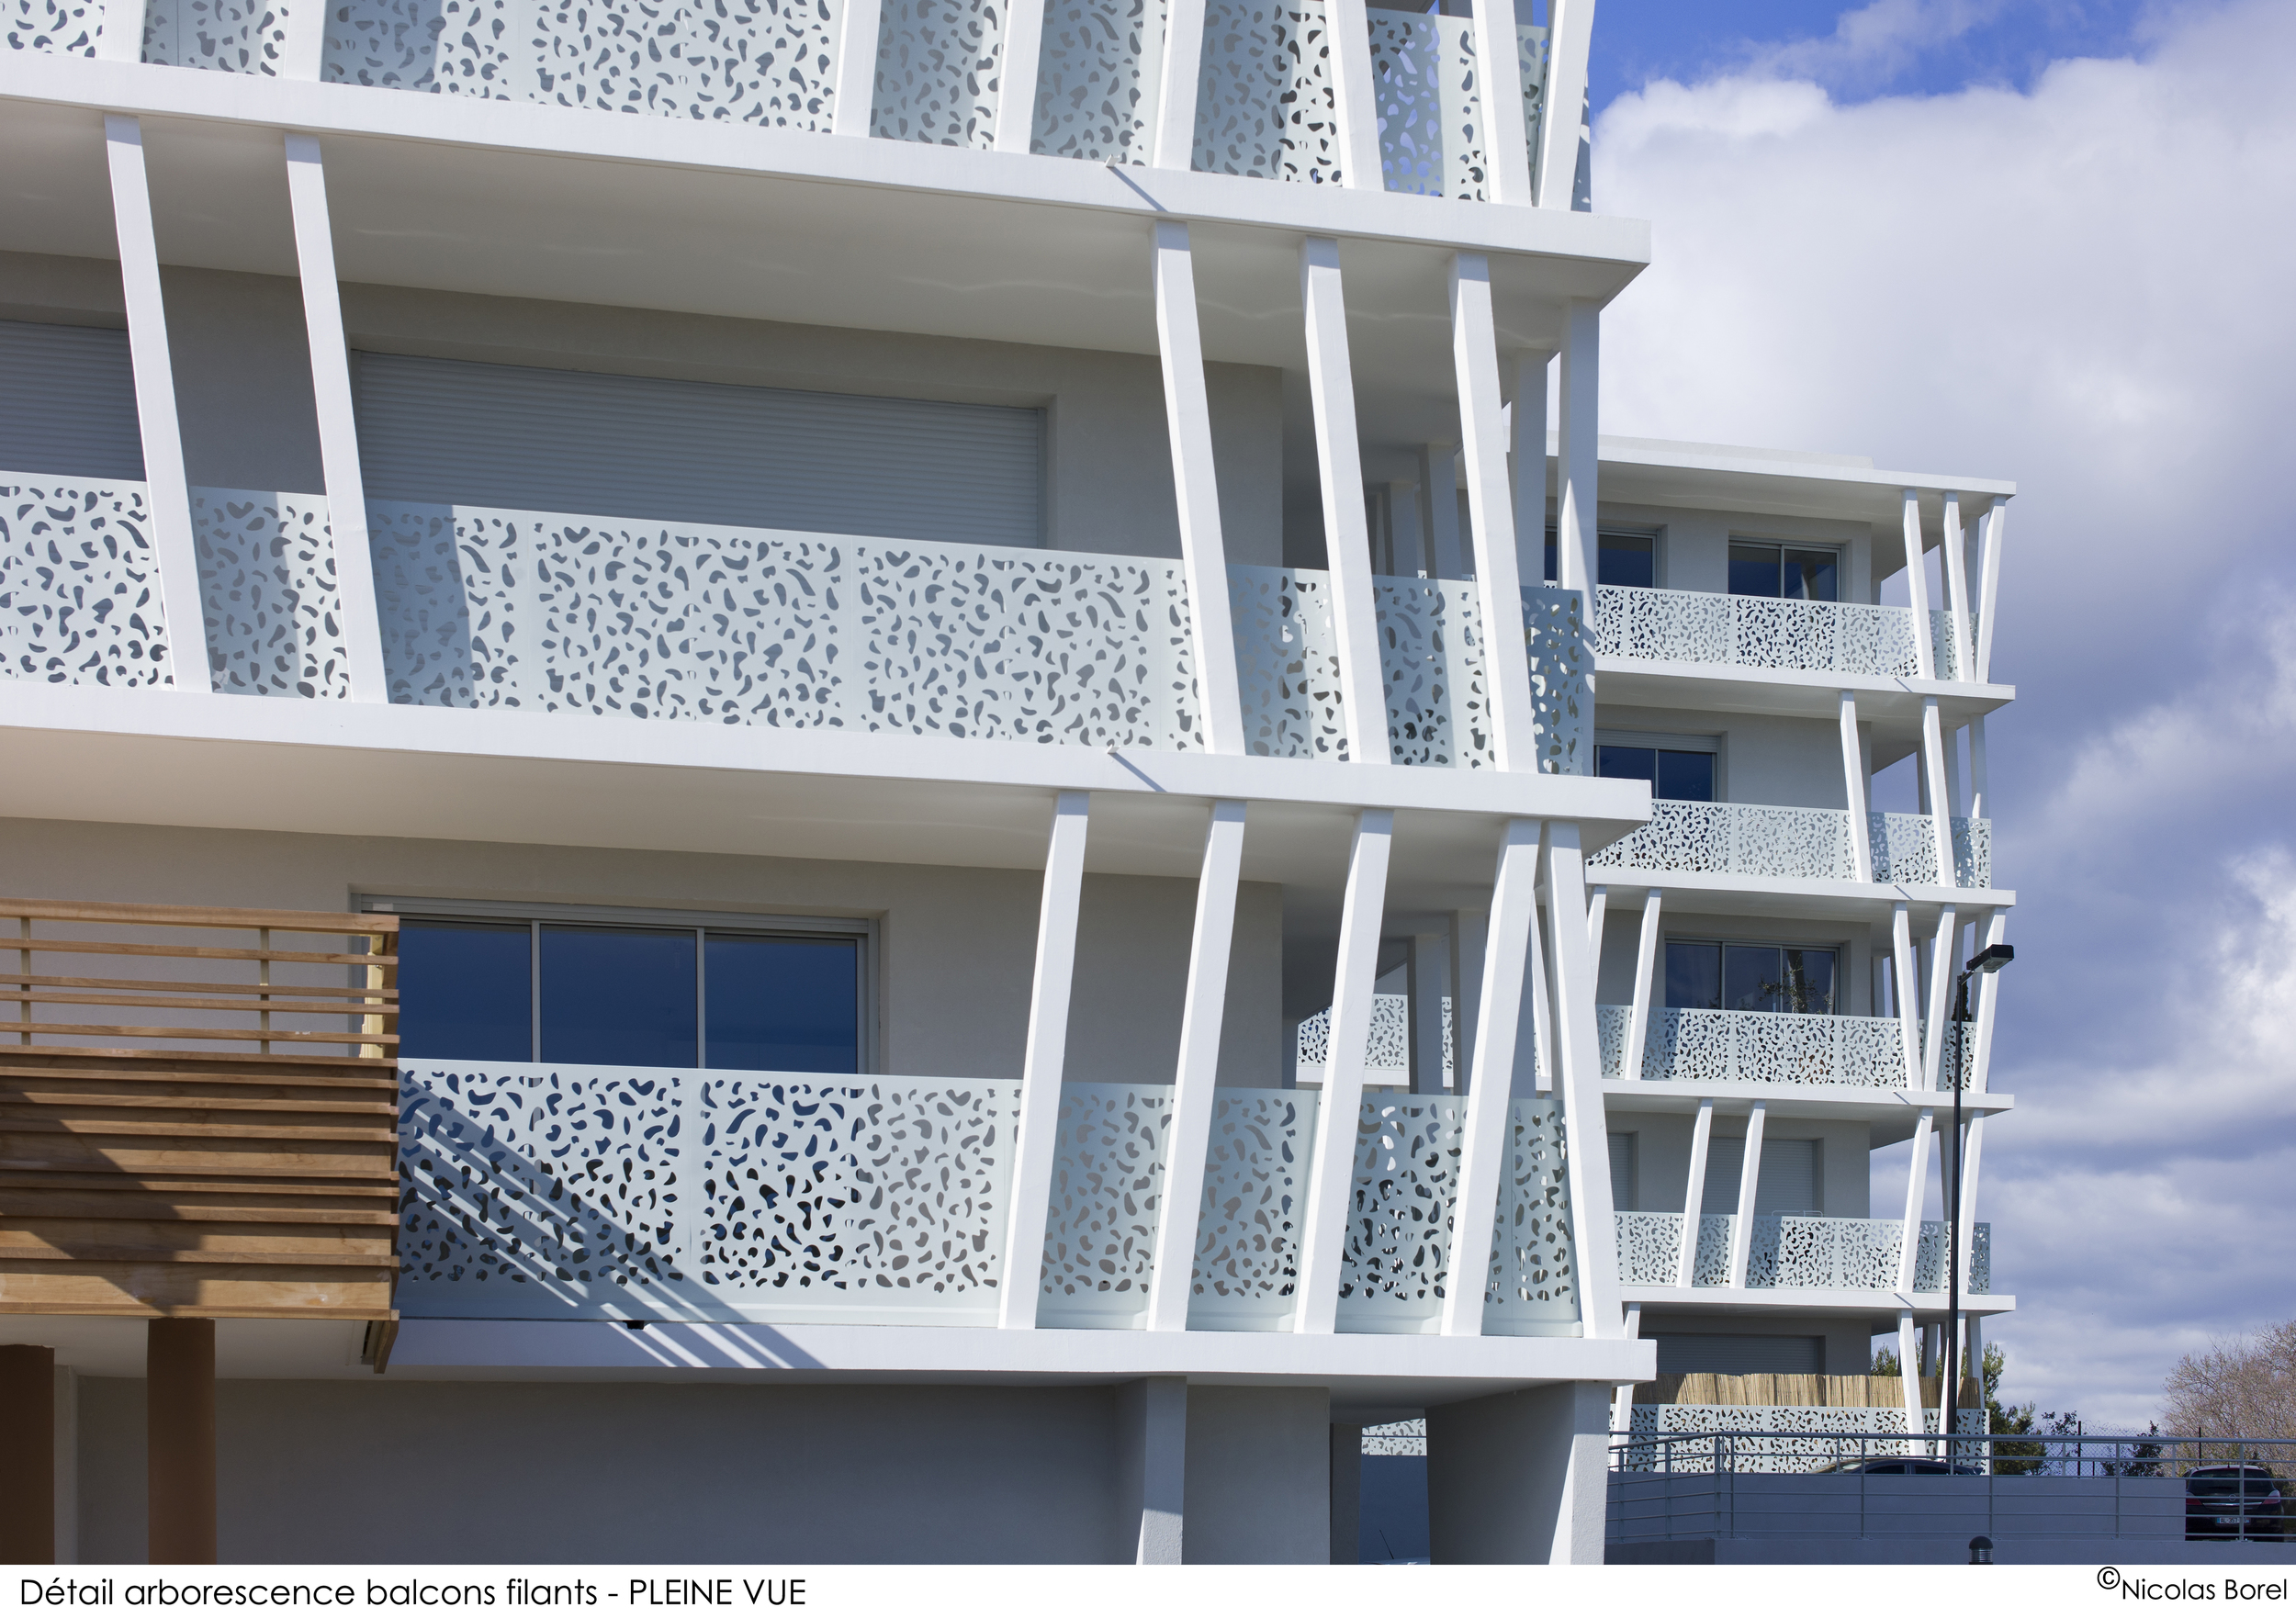 01_DETAIL ARBORESCENCE BALCONS FILANTS.jpg